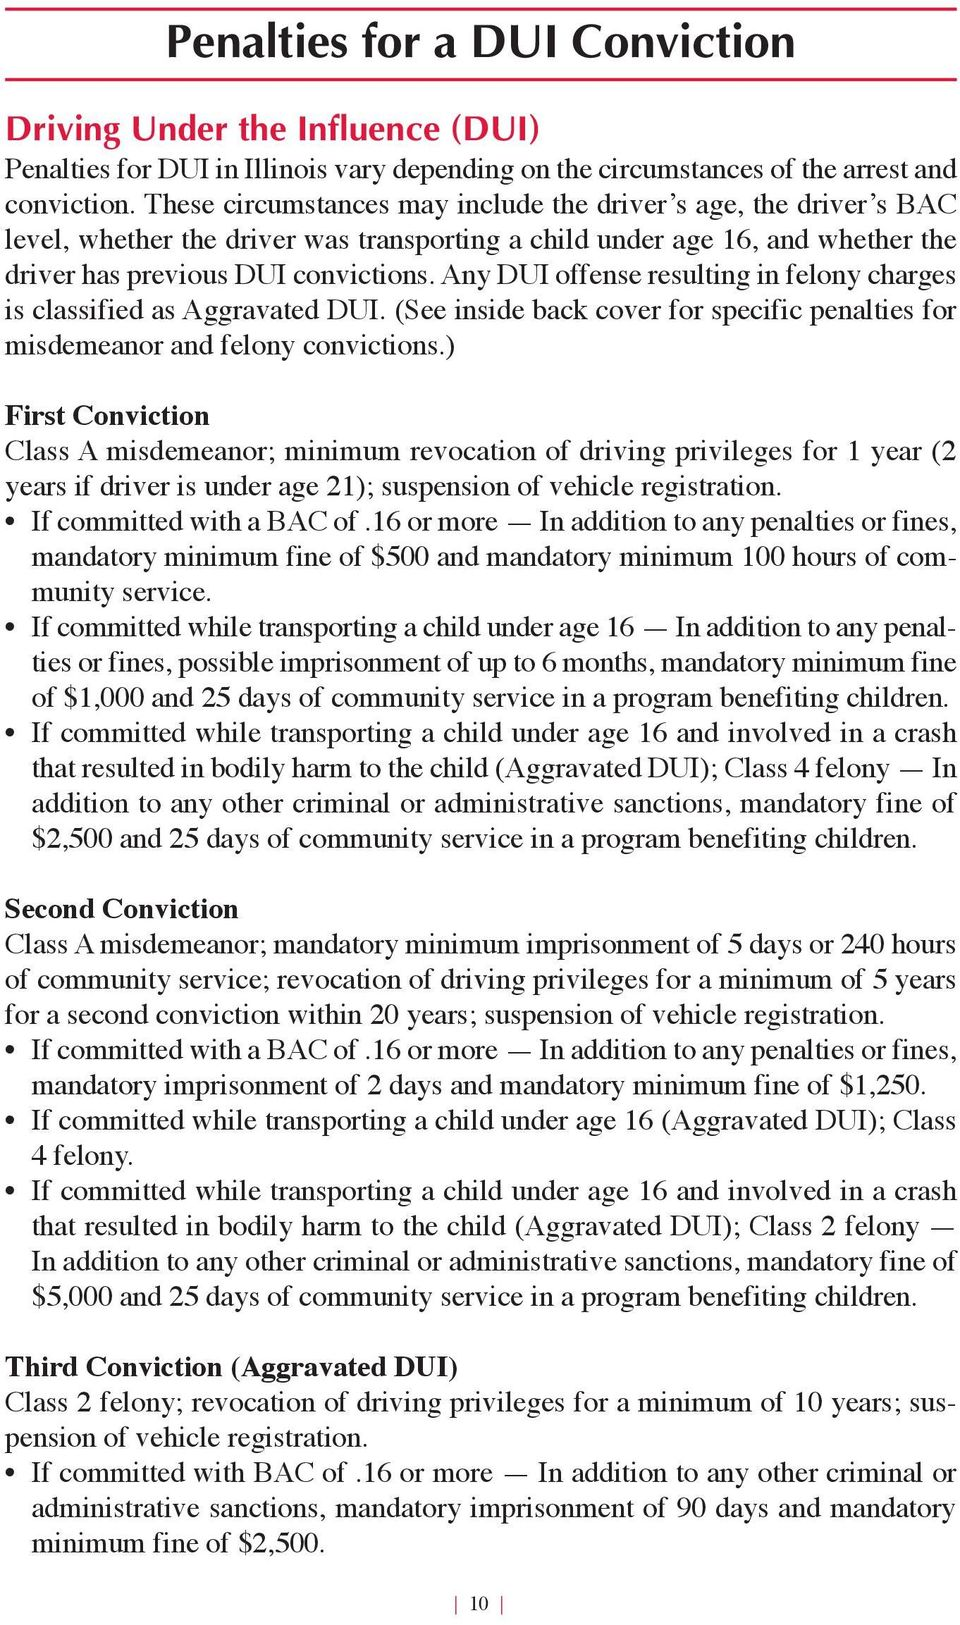 Any DUI offense resulting in felony charges is classified as Aggravated DUI. (See inside back cover for specific penalties for misdemeanor and felony convictions.